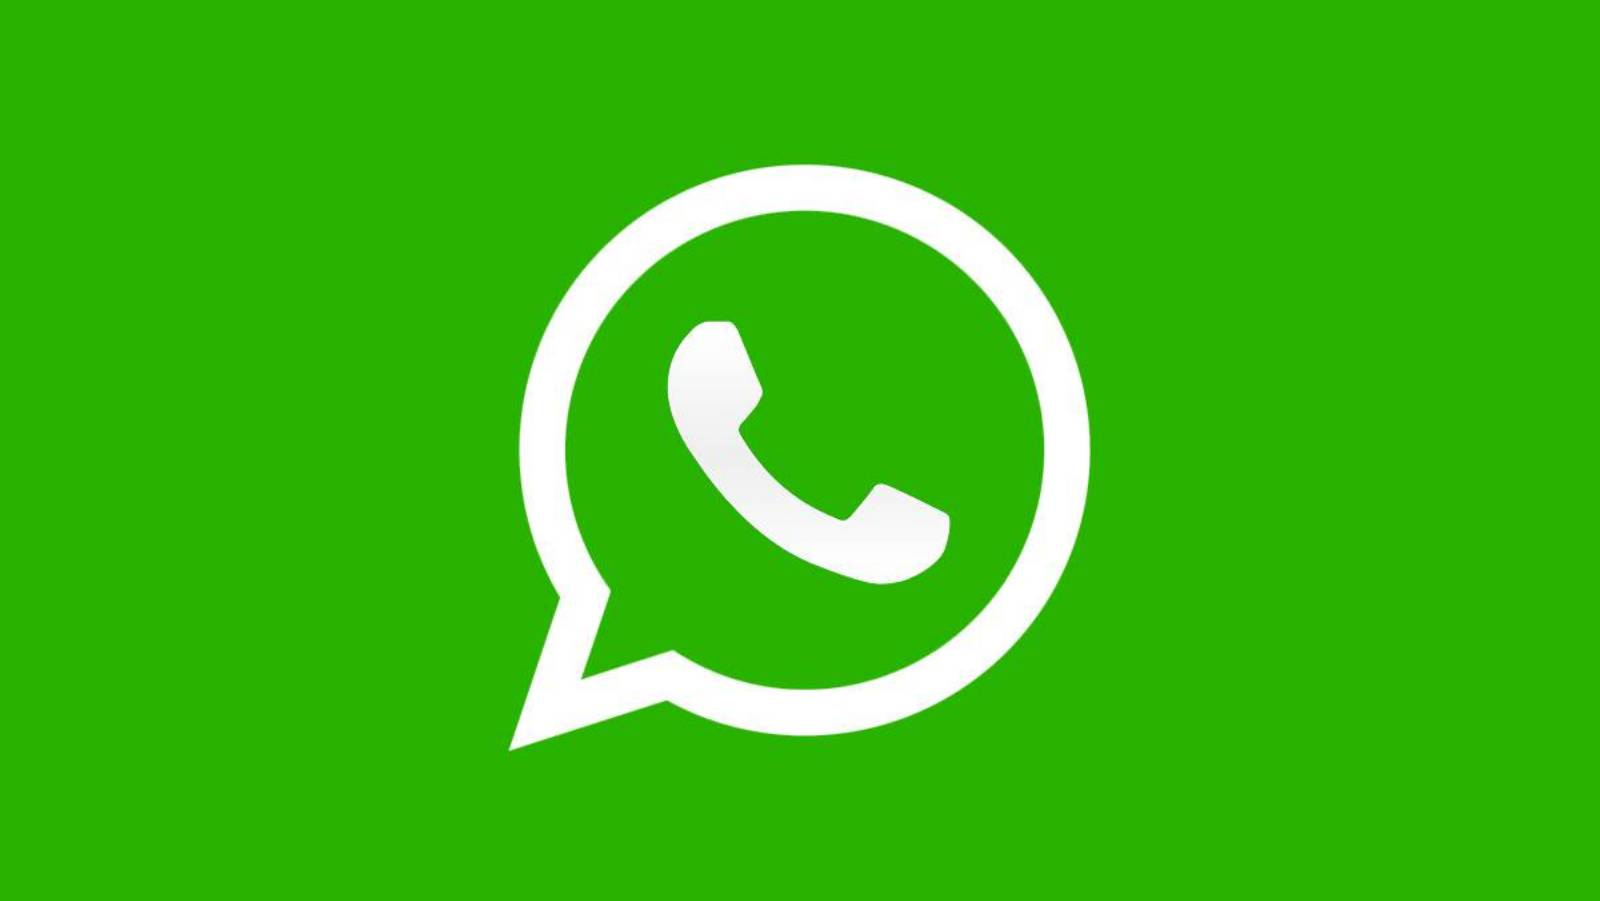 WhatsApp sdk